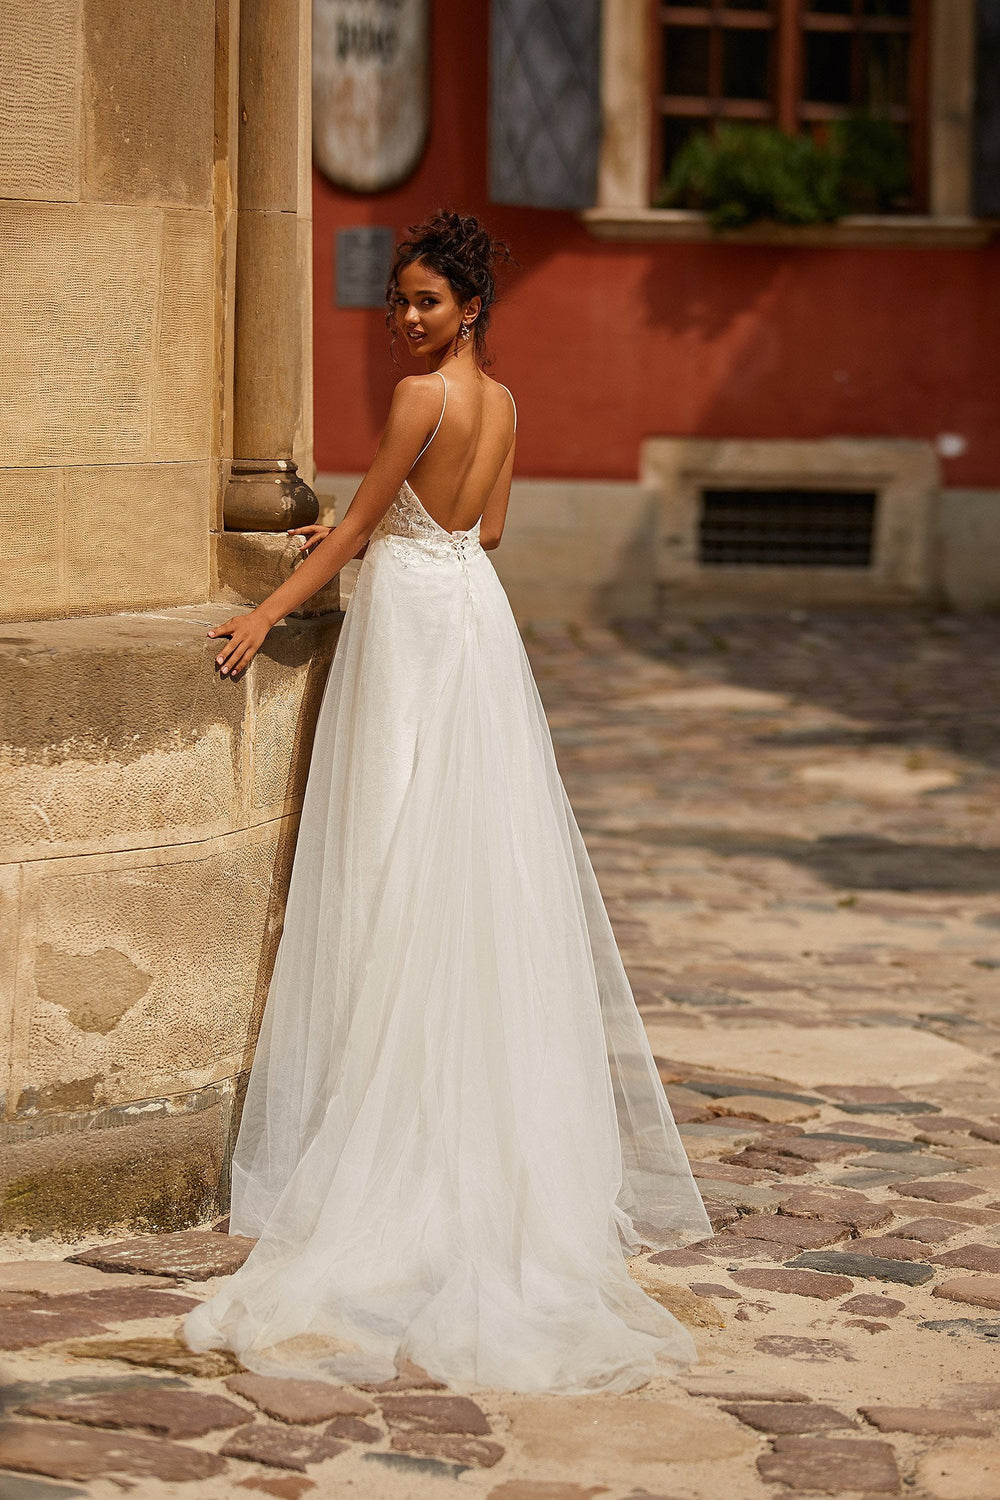 A&N Lidia - White Embellished Boho Bridal Gown with Low Back